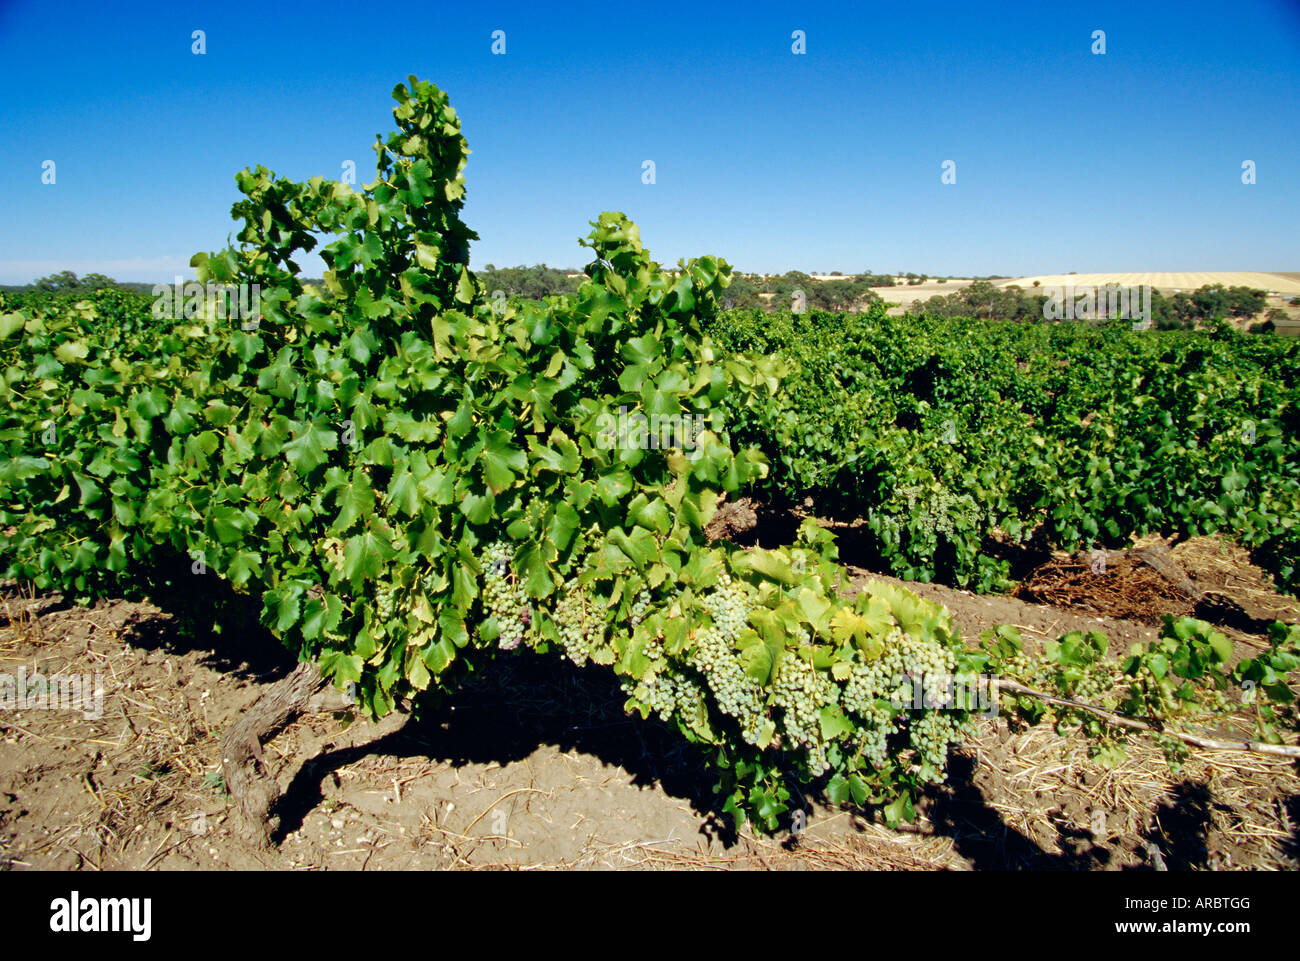 Vines at a winery vineyard, Barossa Valley, South Australia, Australia - Stock Image